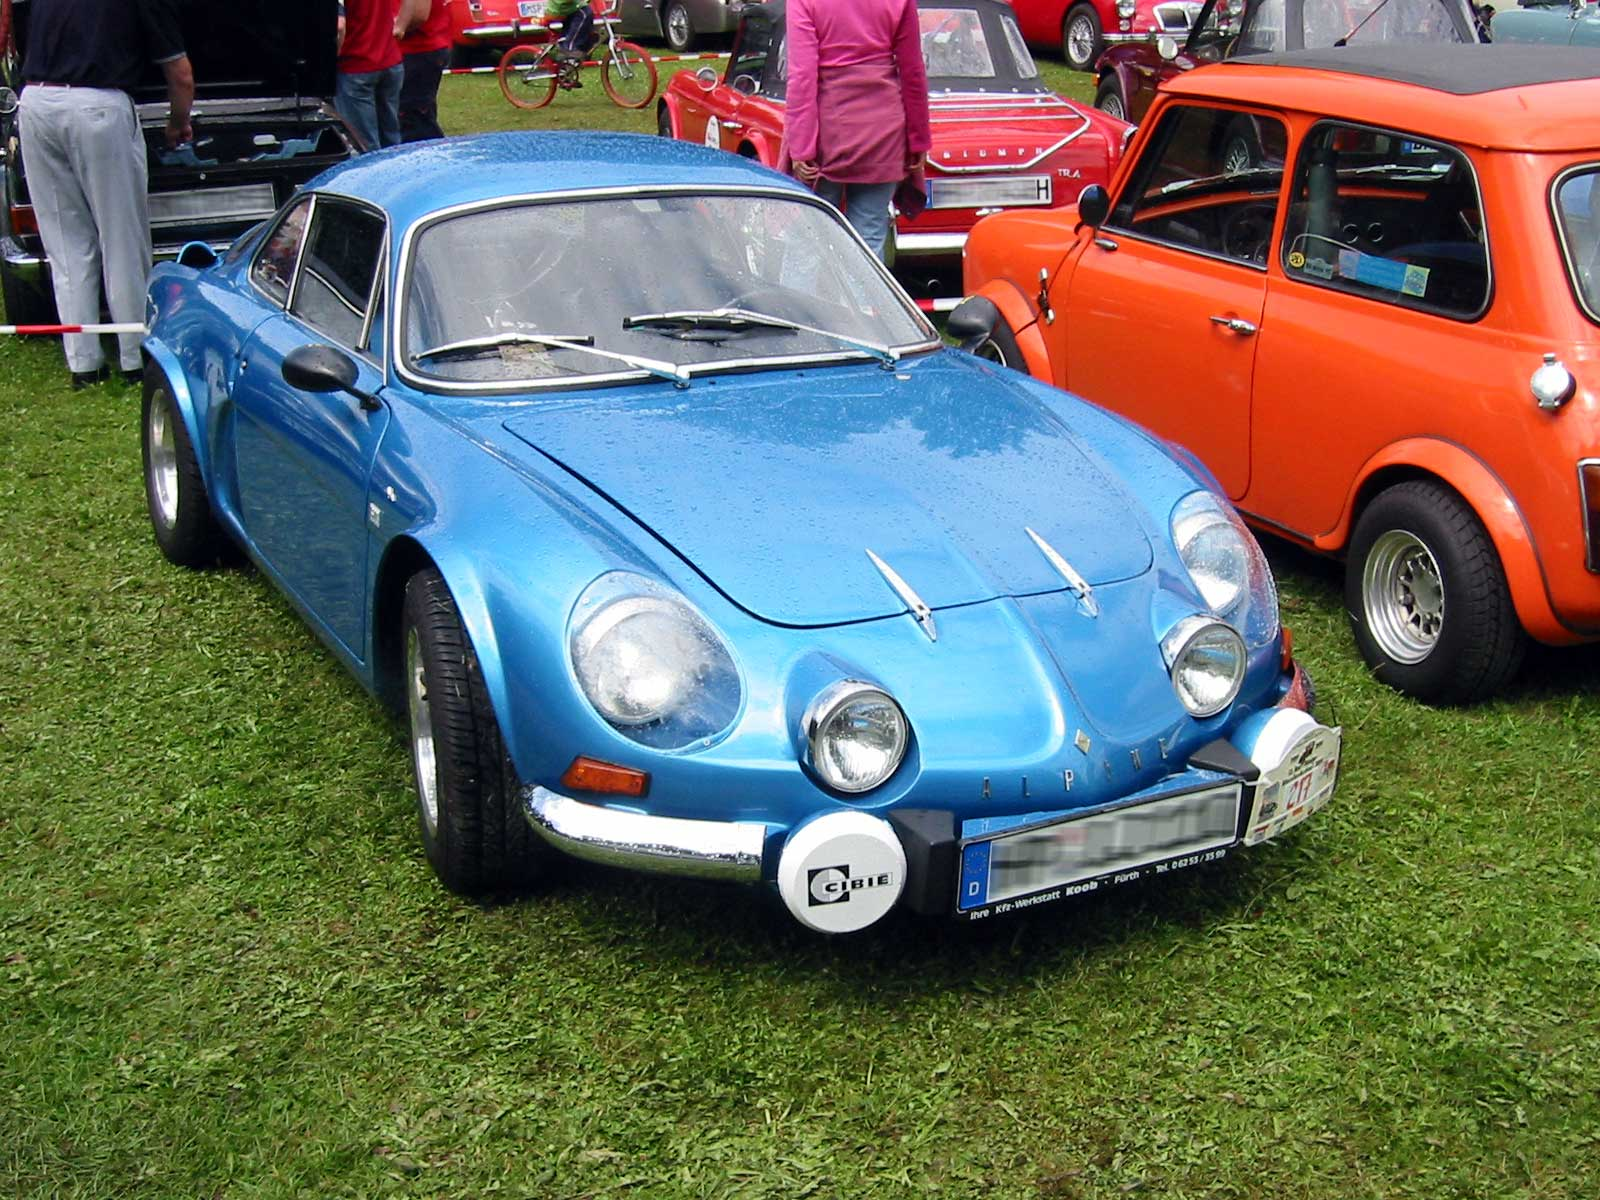 file renault alpine a110 berlinette 1600 wikipedia. Black Bedroom Furniture Sets. Home Design Ideas